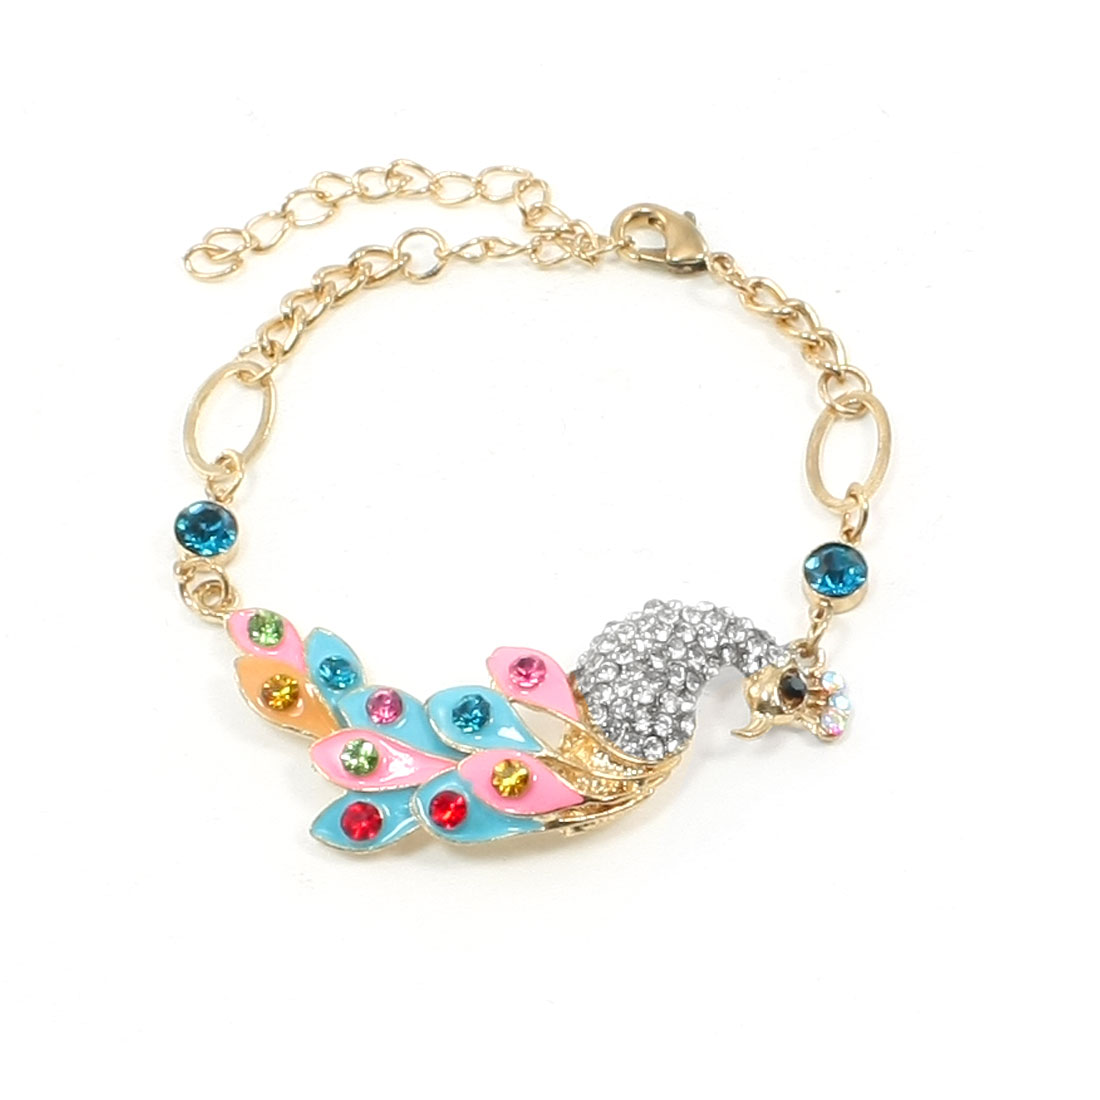 Gold Tone Colorful Rhinestones Peacock Design Chain Bracelet Jewelry for Girl